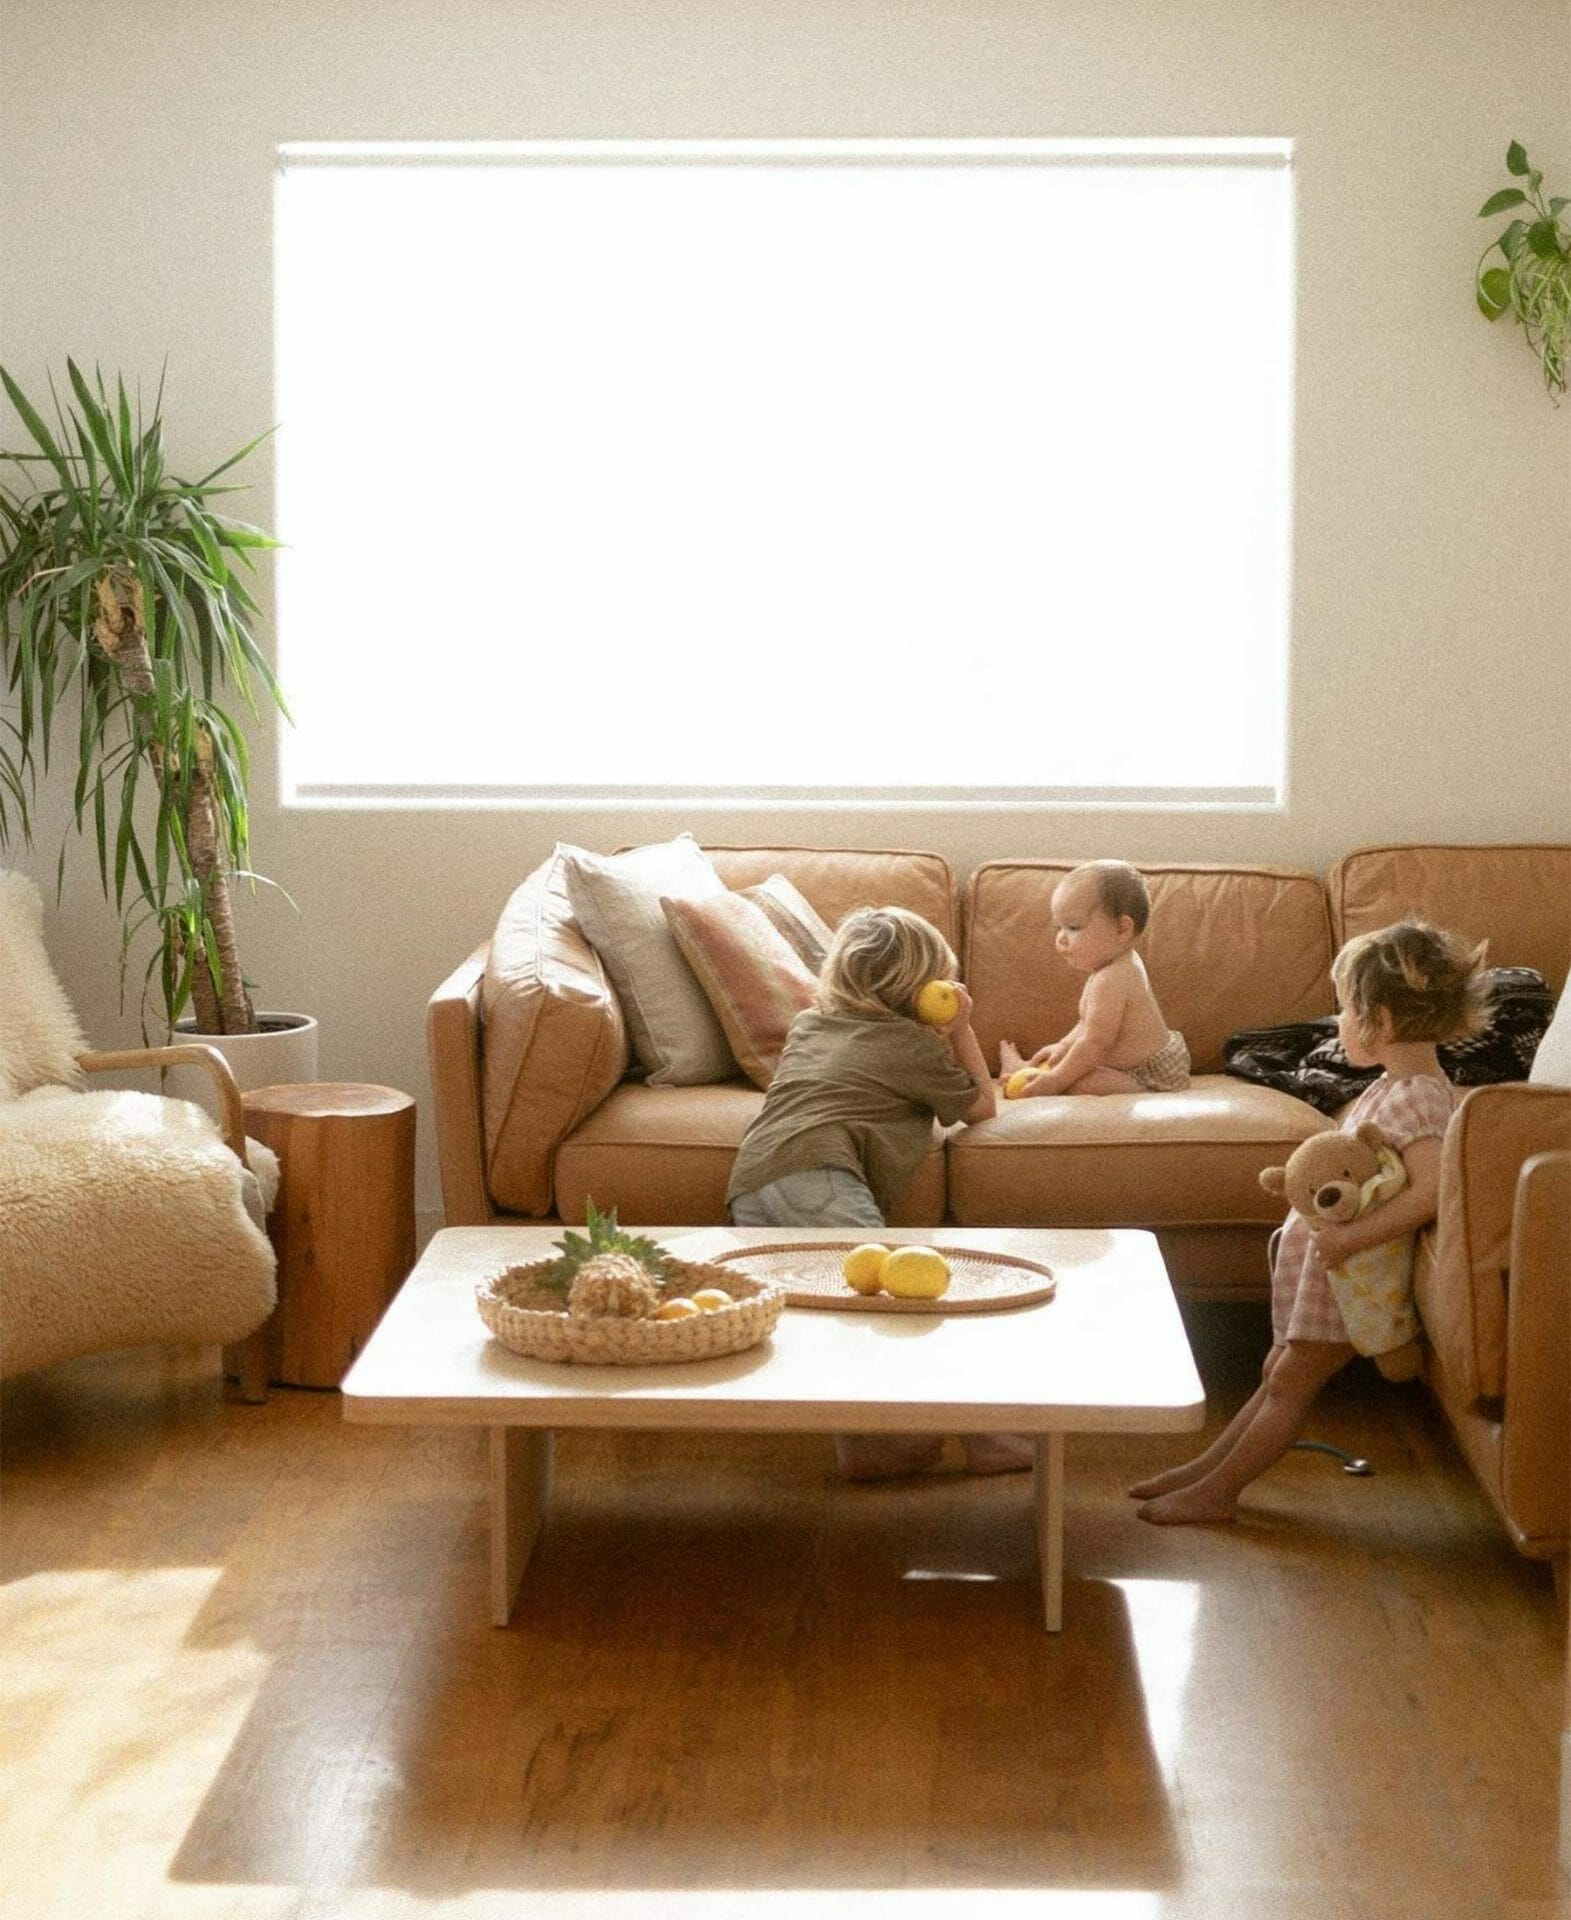 Yuna Leonard's bright space shows her children playing on the Timber Sectional from Article